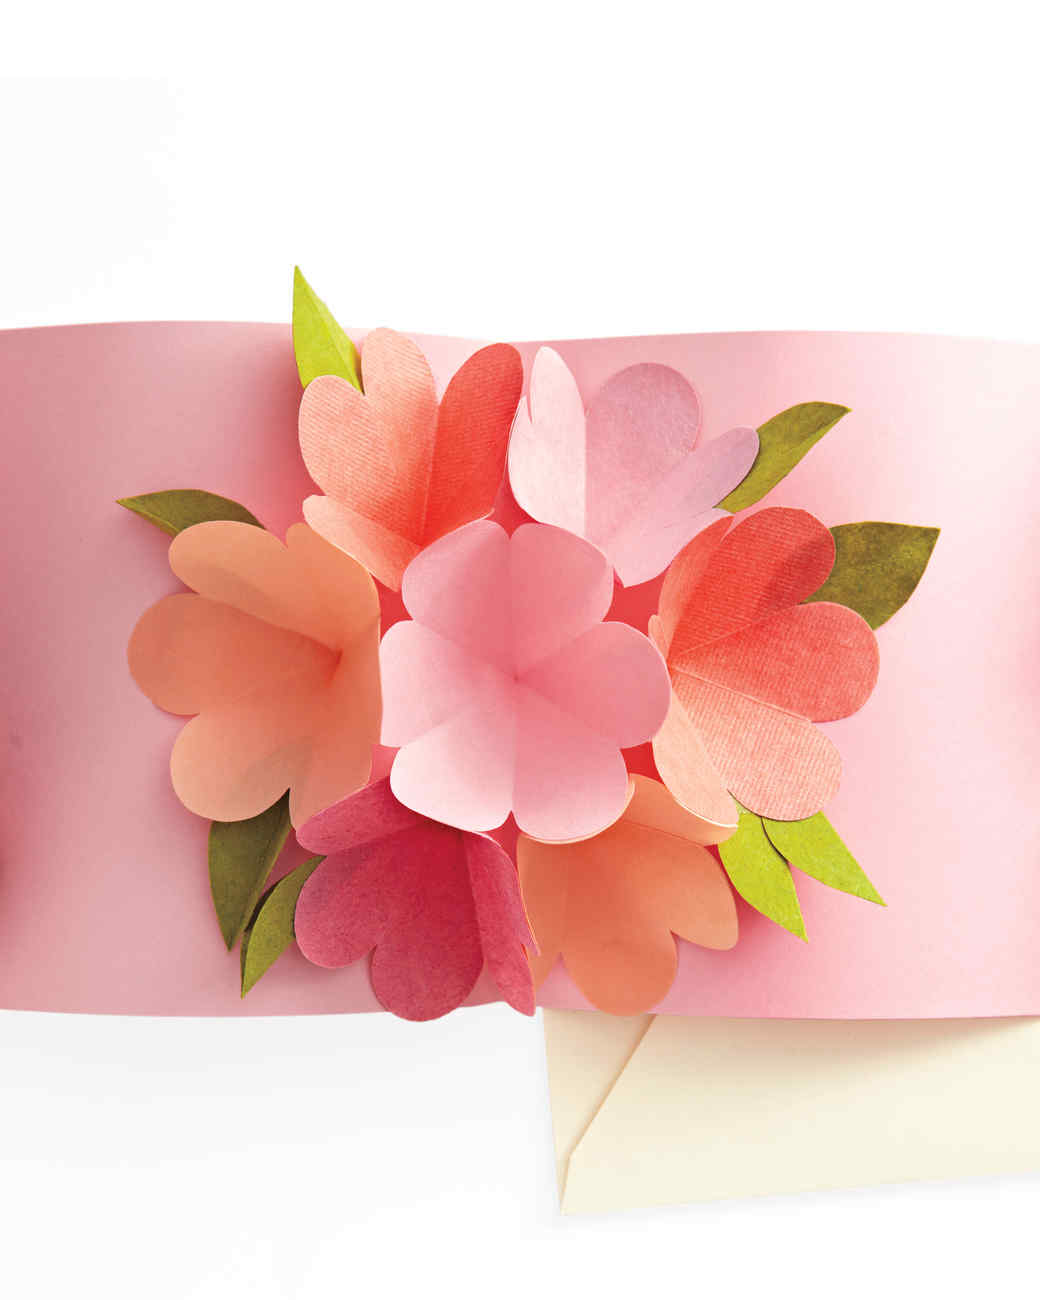 Baby shower ideas diy paper party decorations martha stewart ask